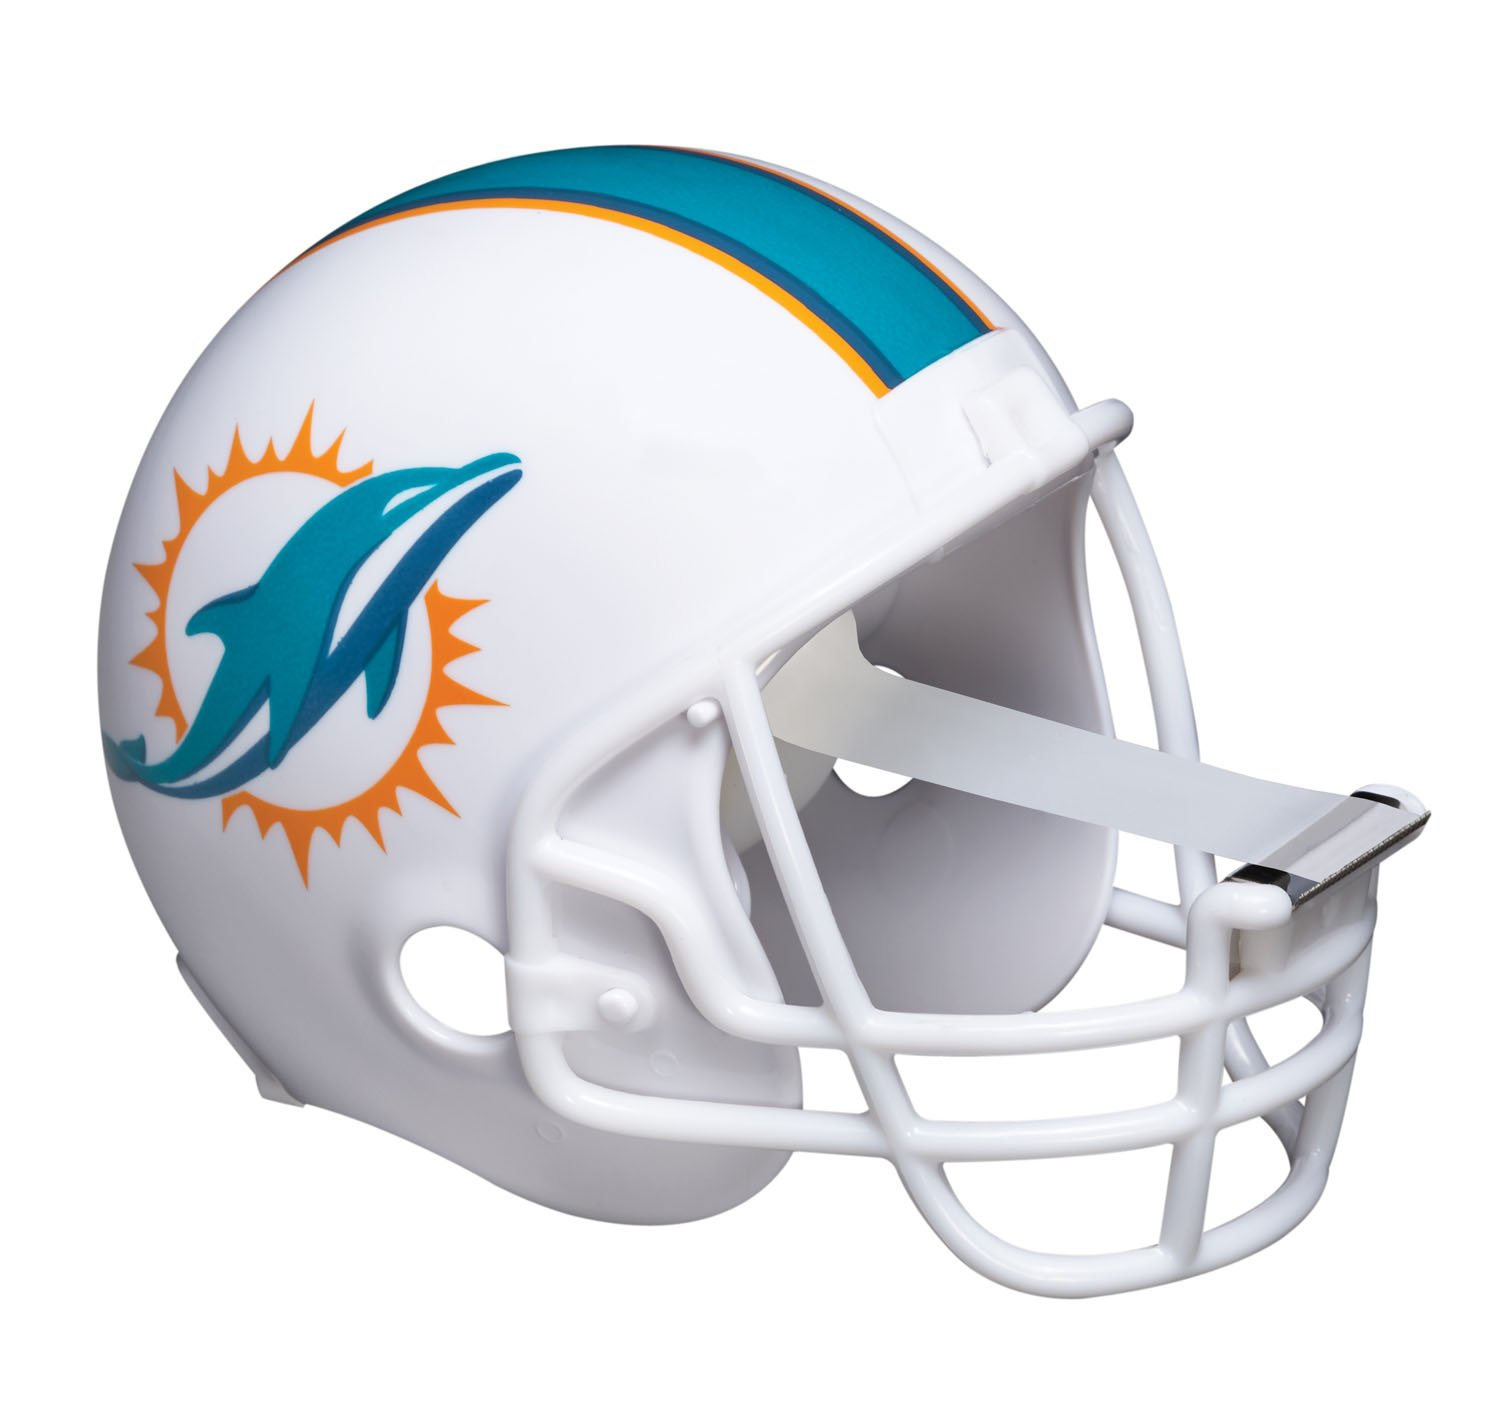 Scotch Magic Tape Dispenser, Miami Dolphins Football Helmet with 1 Roll of 3/4 x 350 Inches Tape